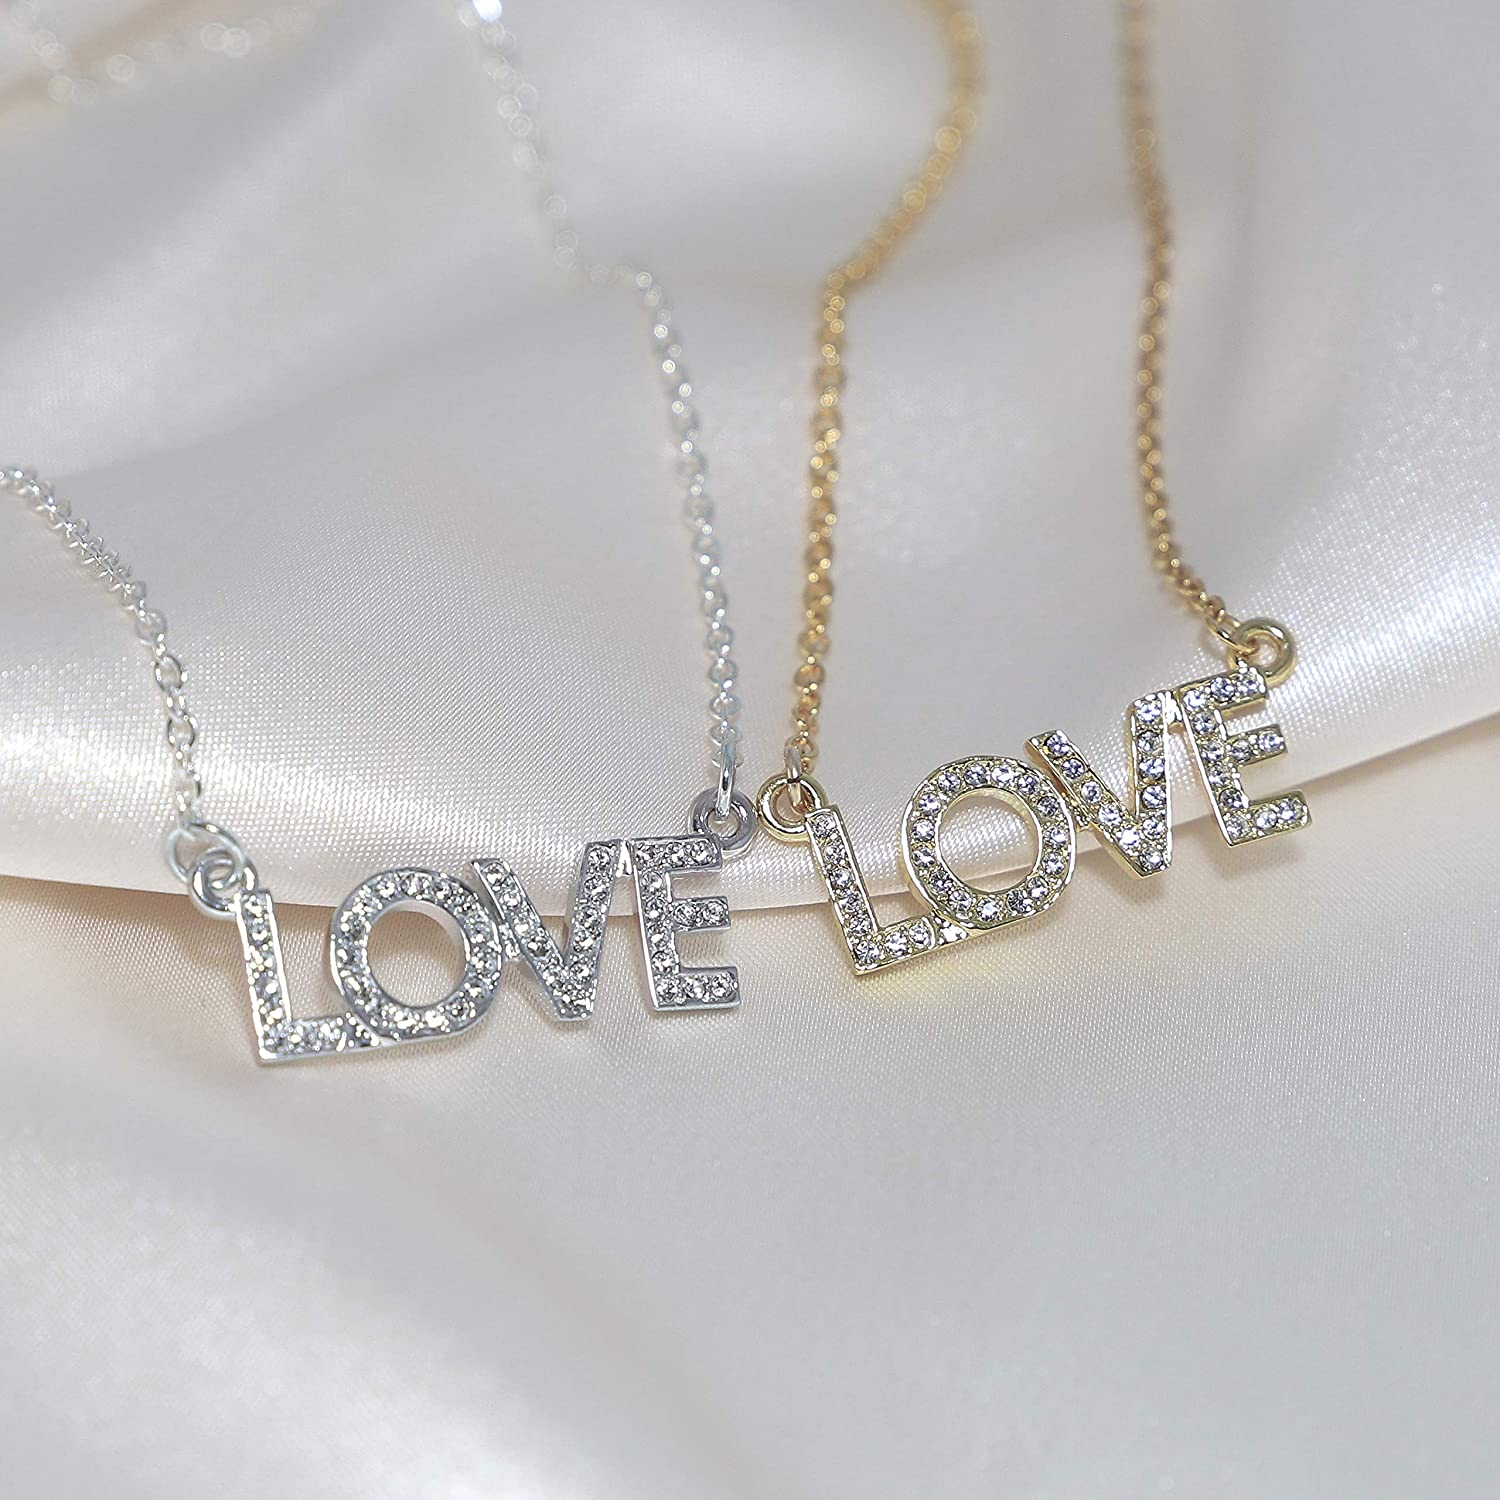 Erica Anenberg 22K Gold CZ Love Necklace for Girlfriend